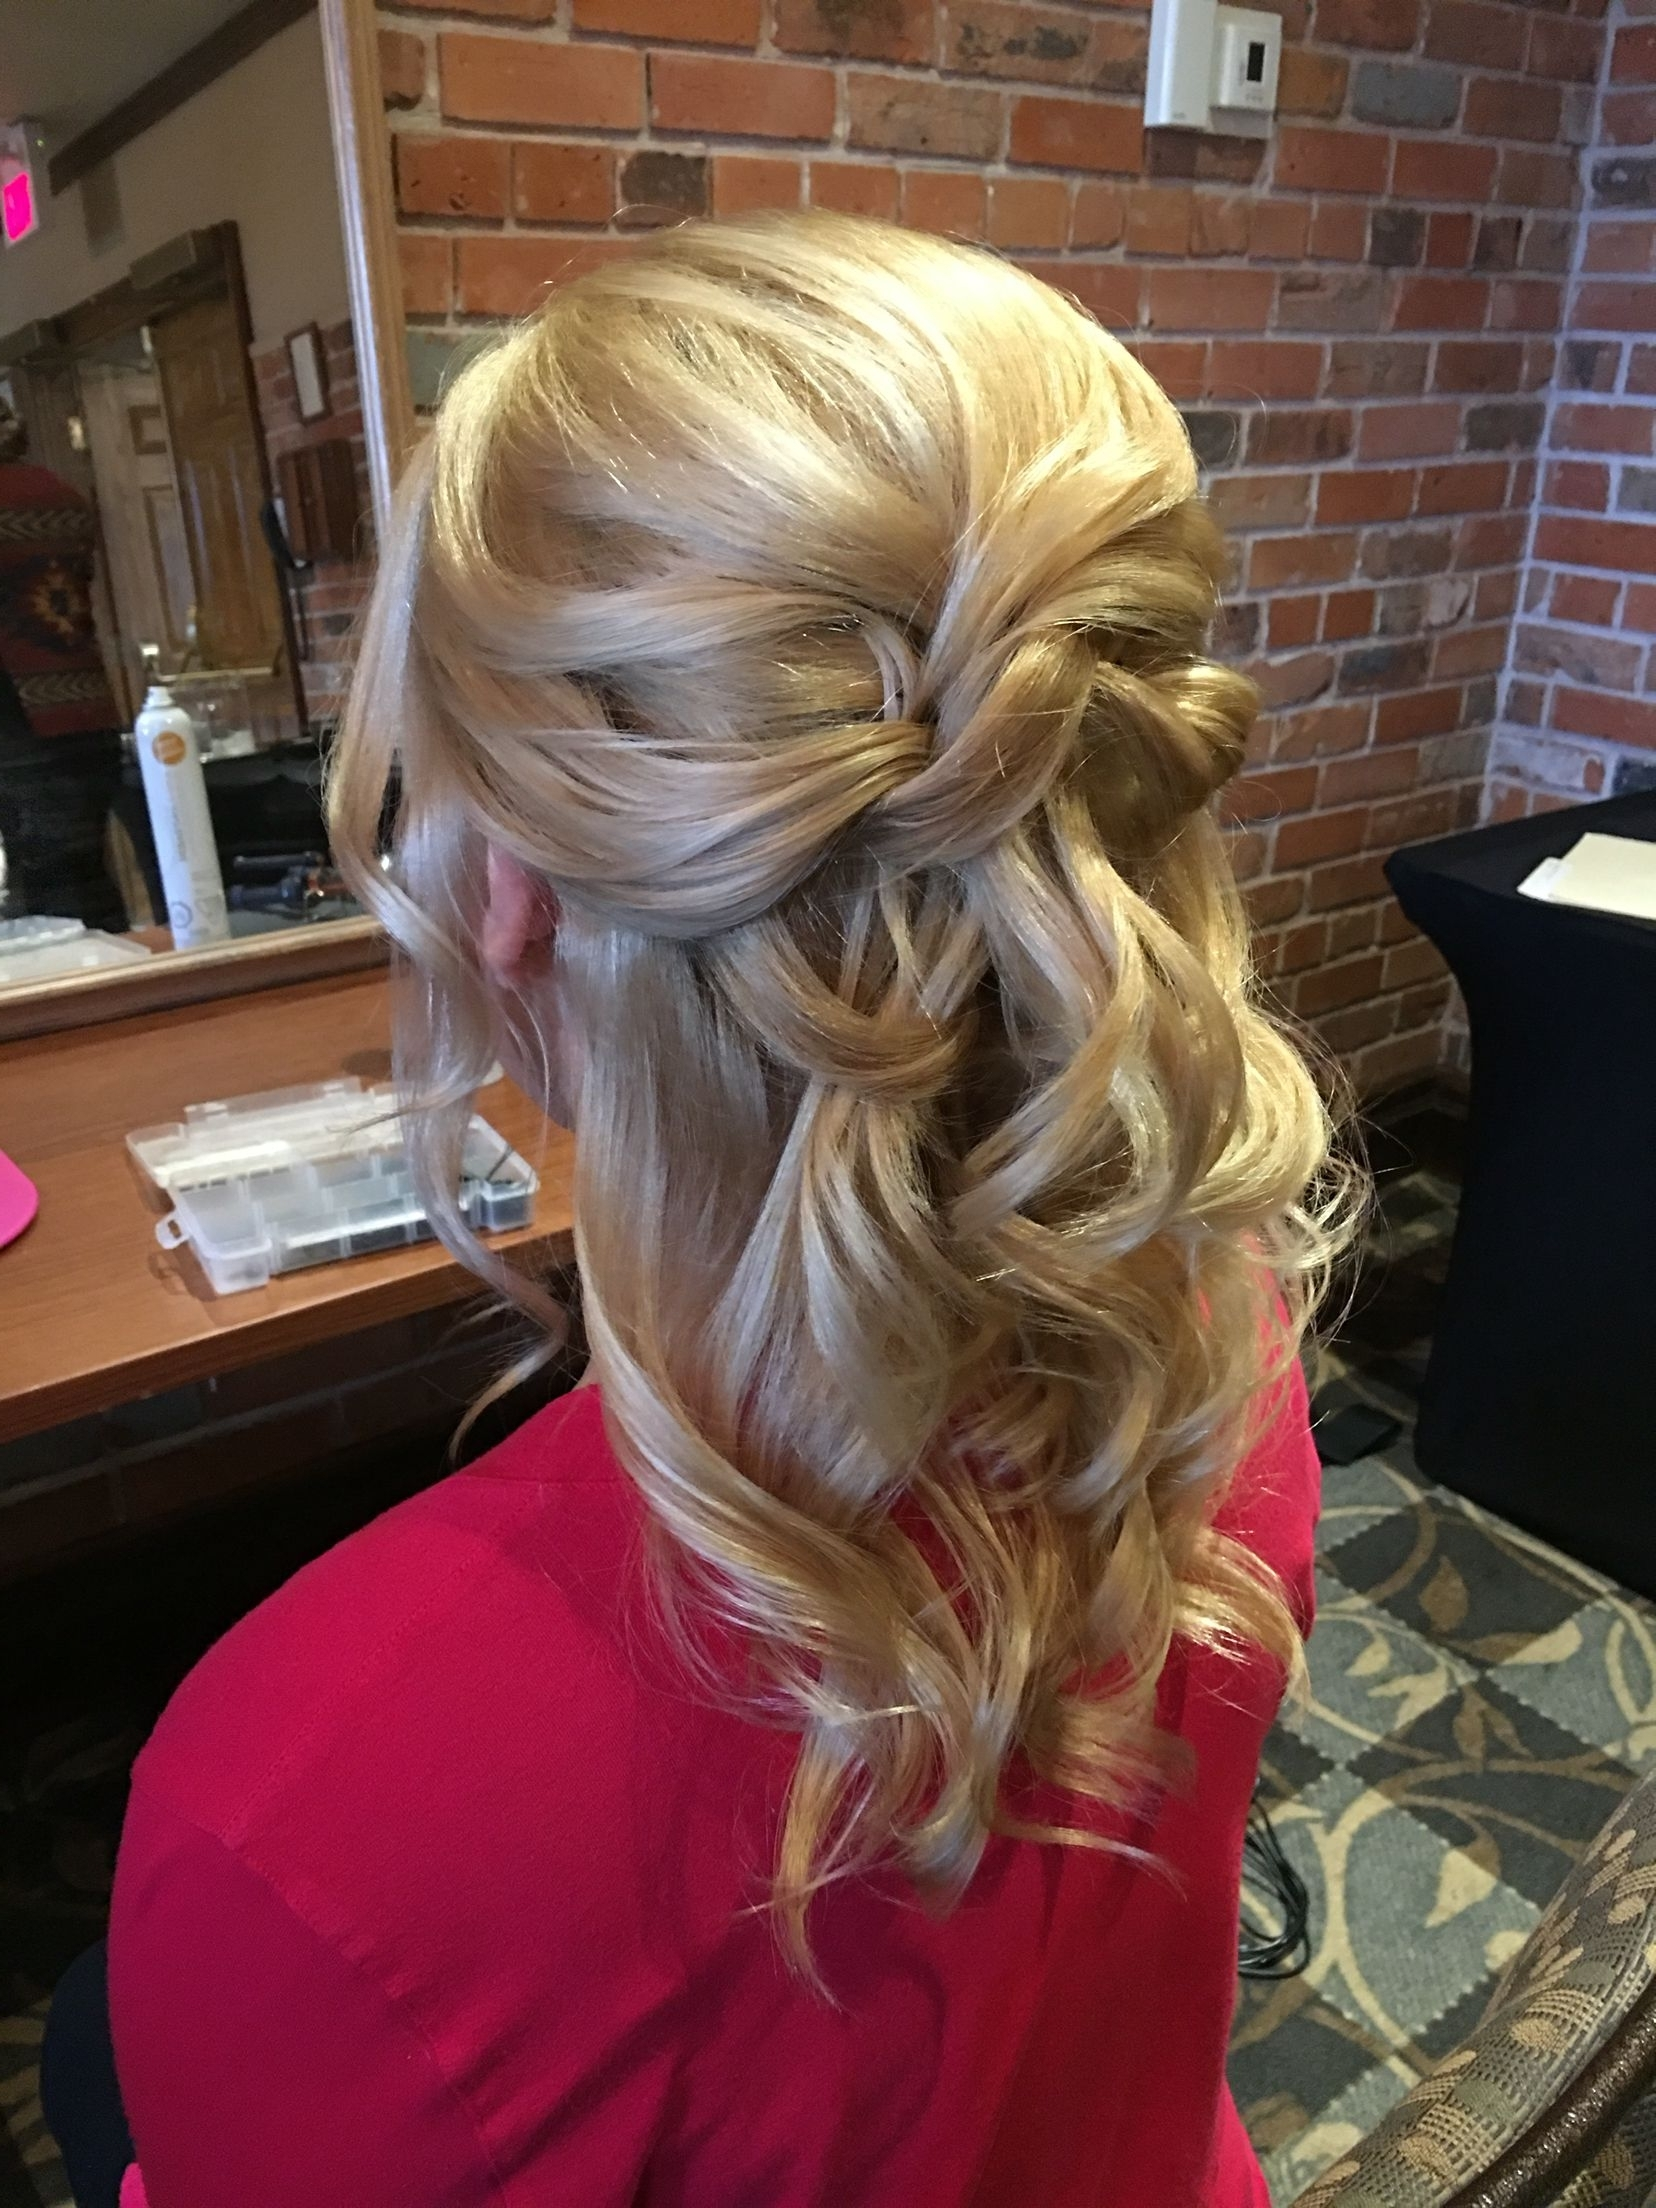 Half Up Half Down Wedding Hair For Bride Or Mother Of The Bride Pertaining To Half Updo Hairstyles For Mother Of The Bride (View 6 of 15)